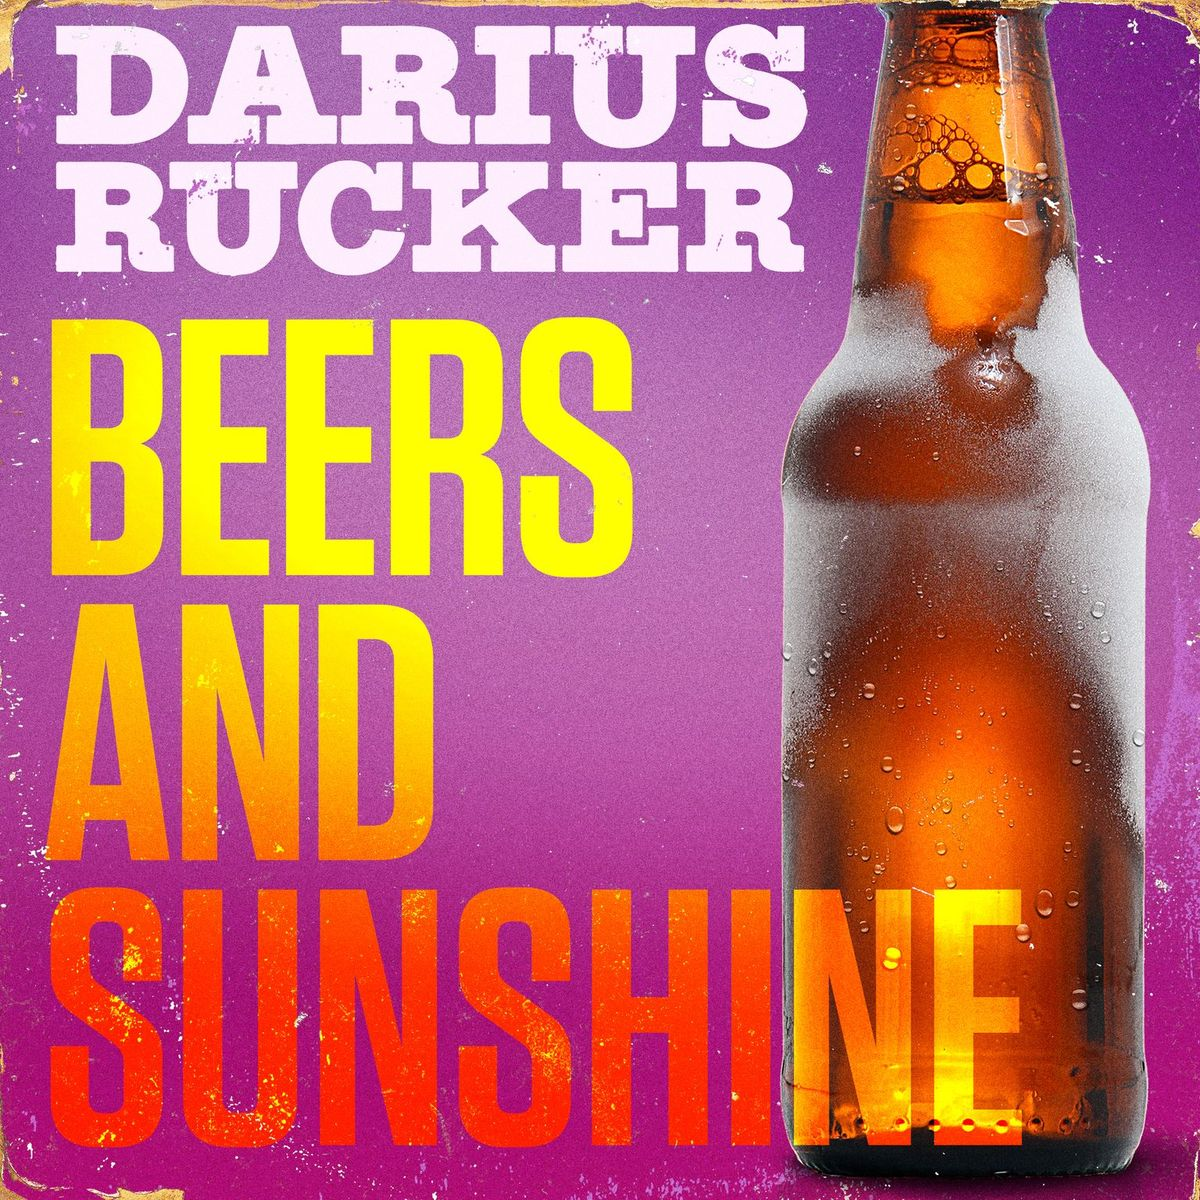 Beers and Sunshine is #1 at Country Radio!